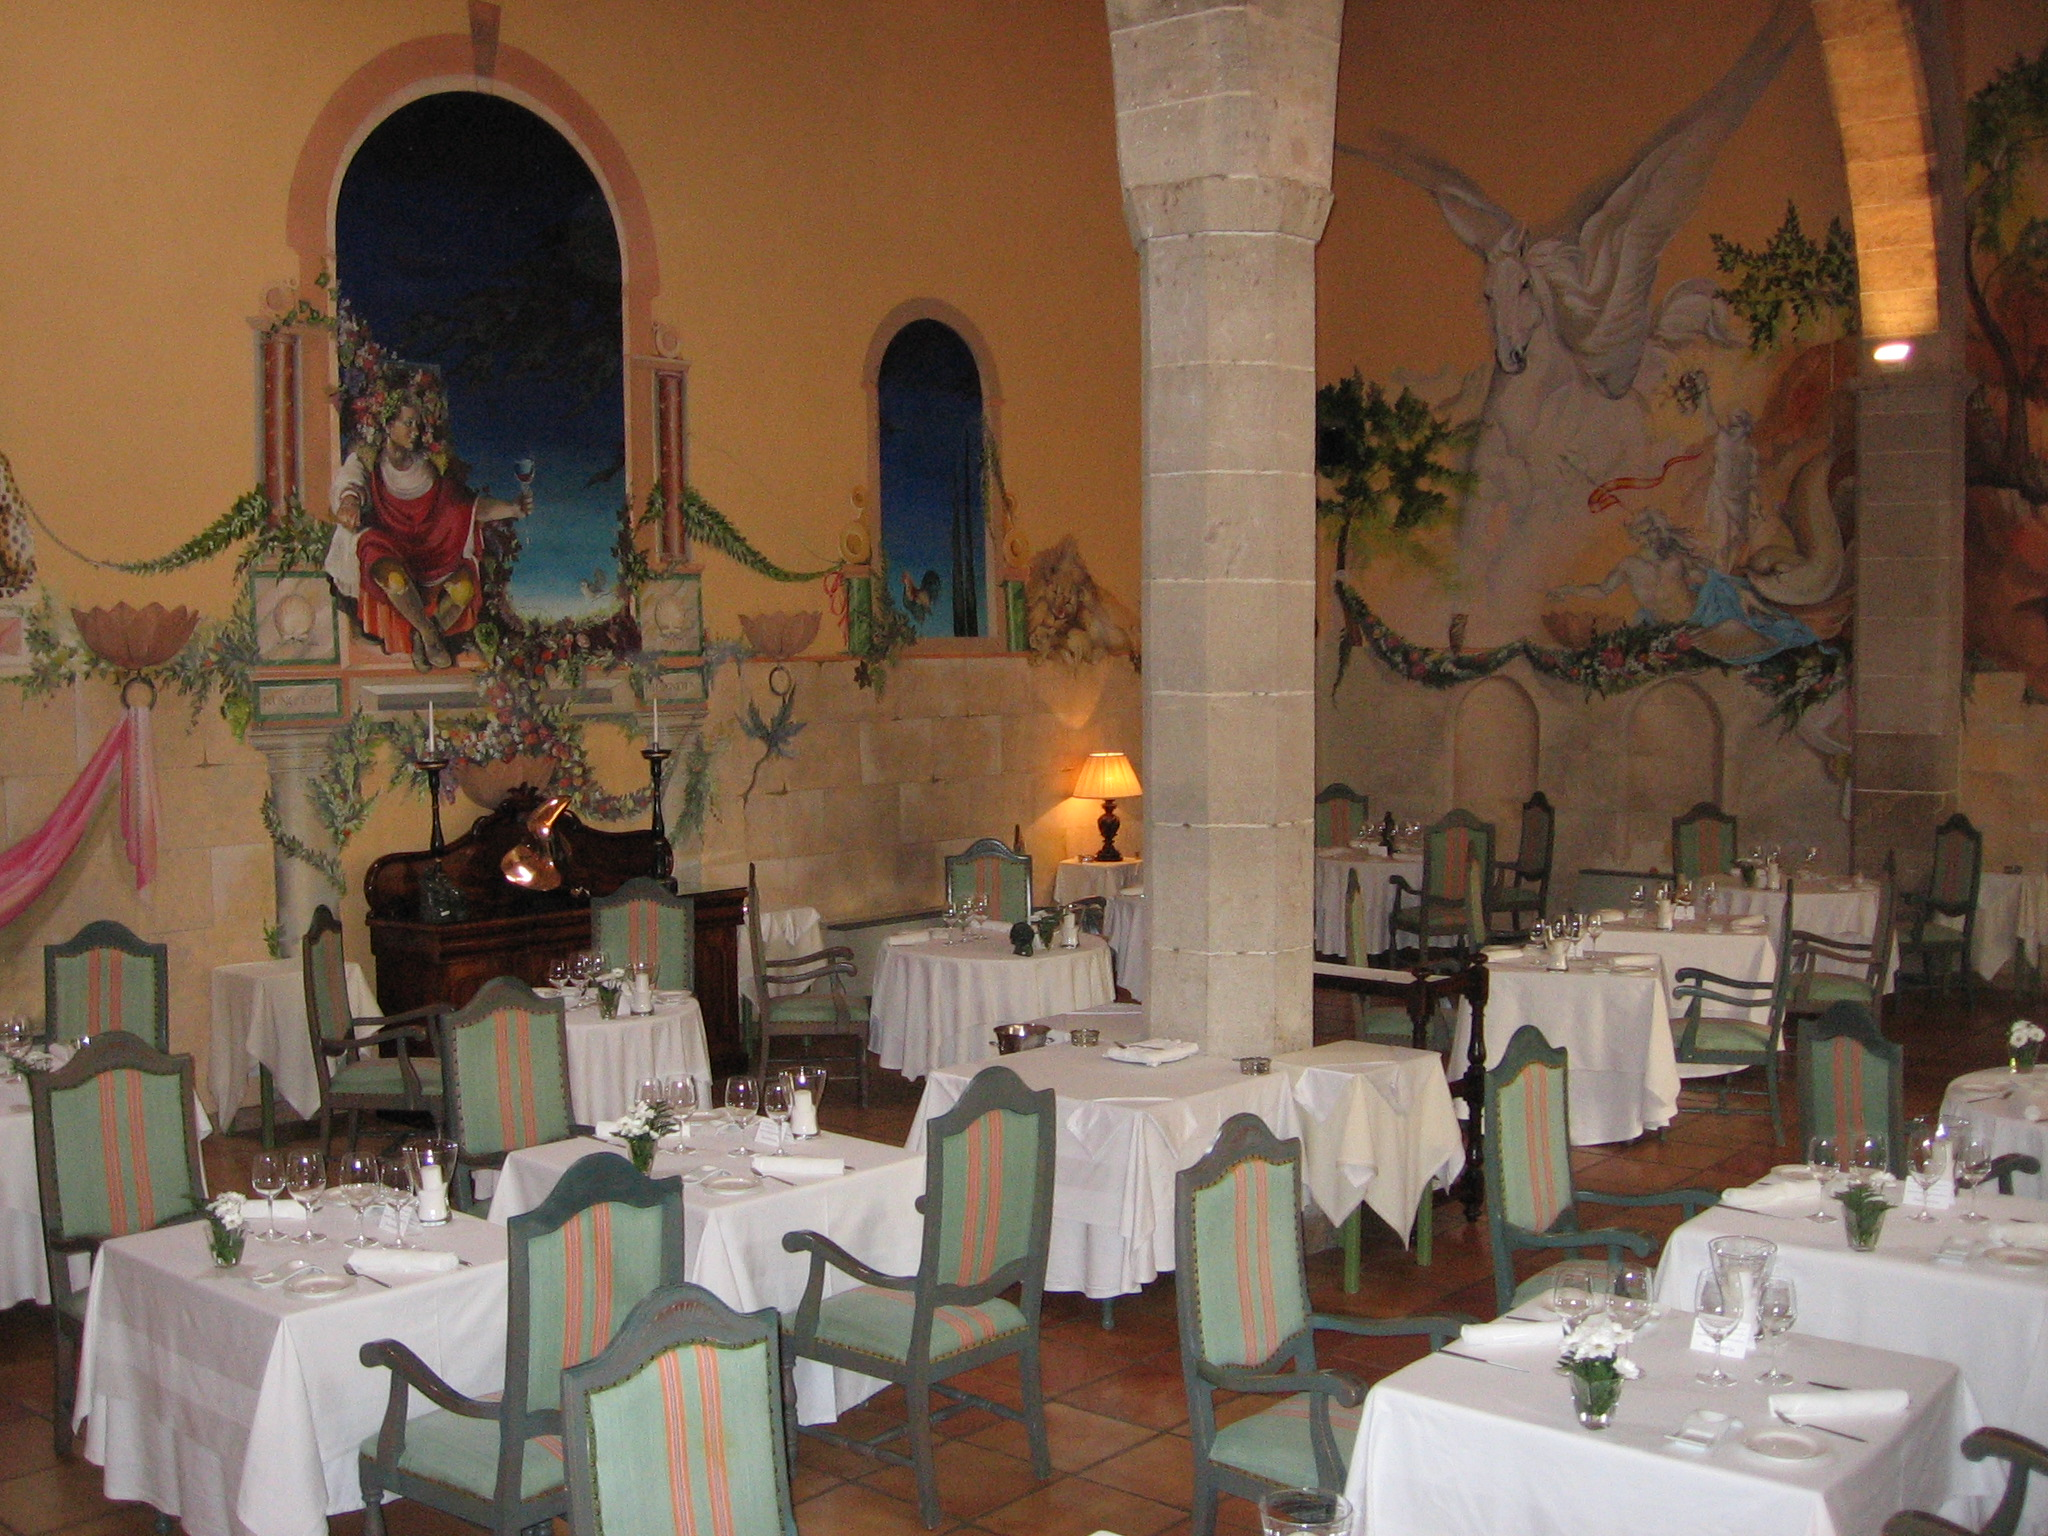 Bacchus restaurant as it was